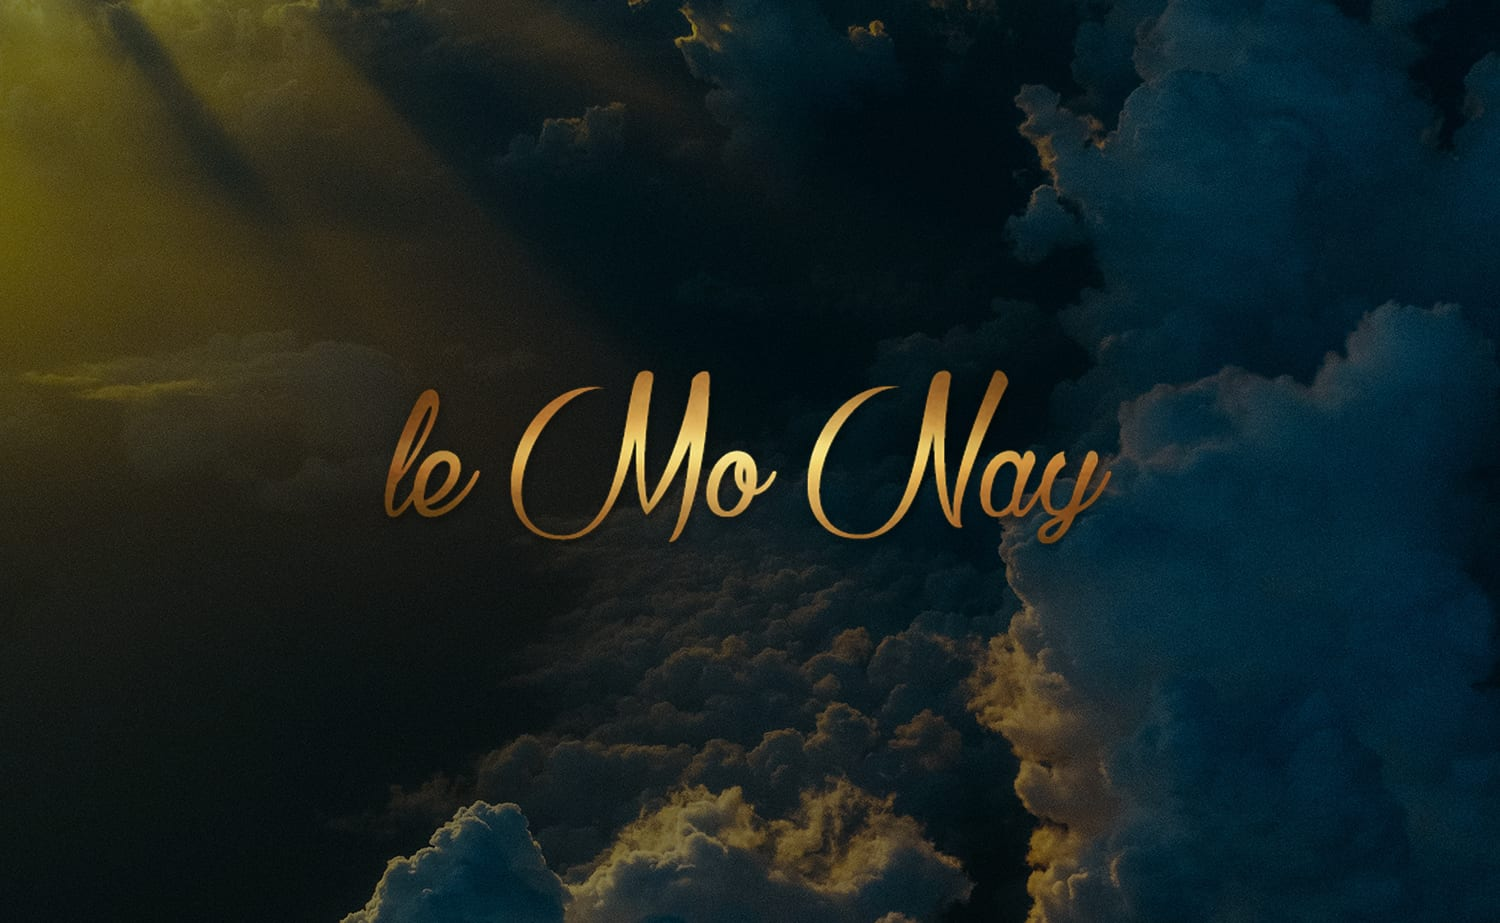 "Title ""le mo nay"" with clouds in the background, image is in full colour"